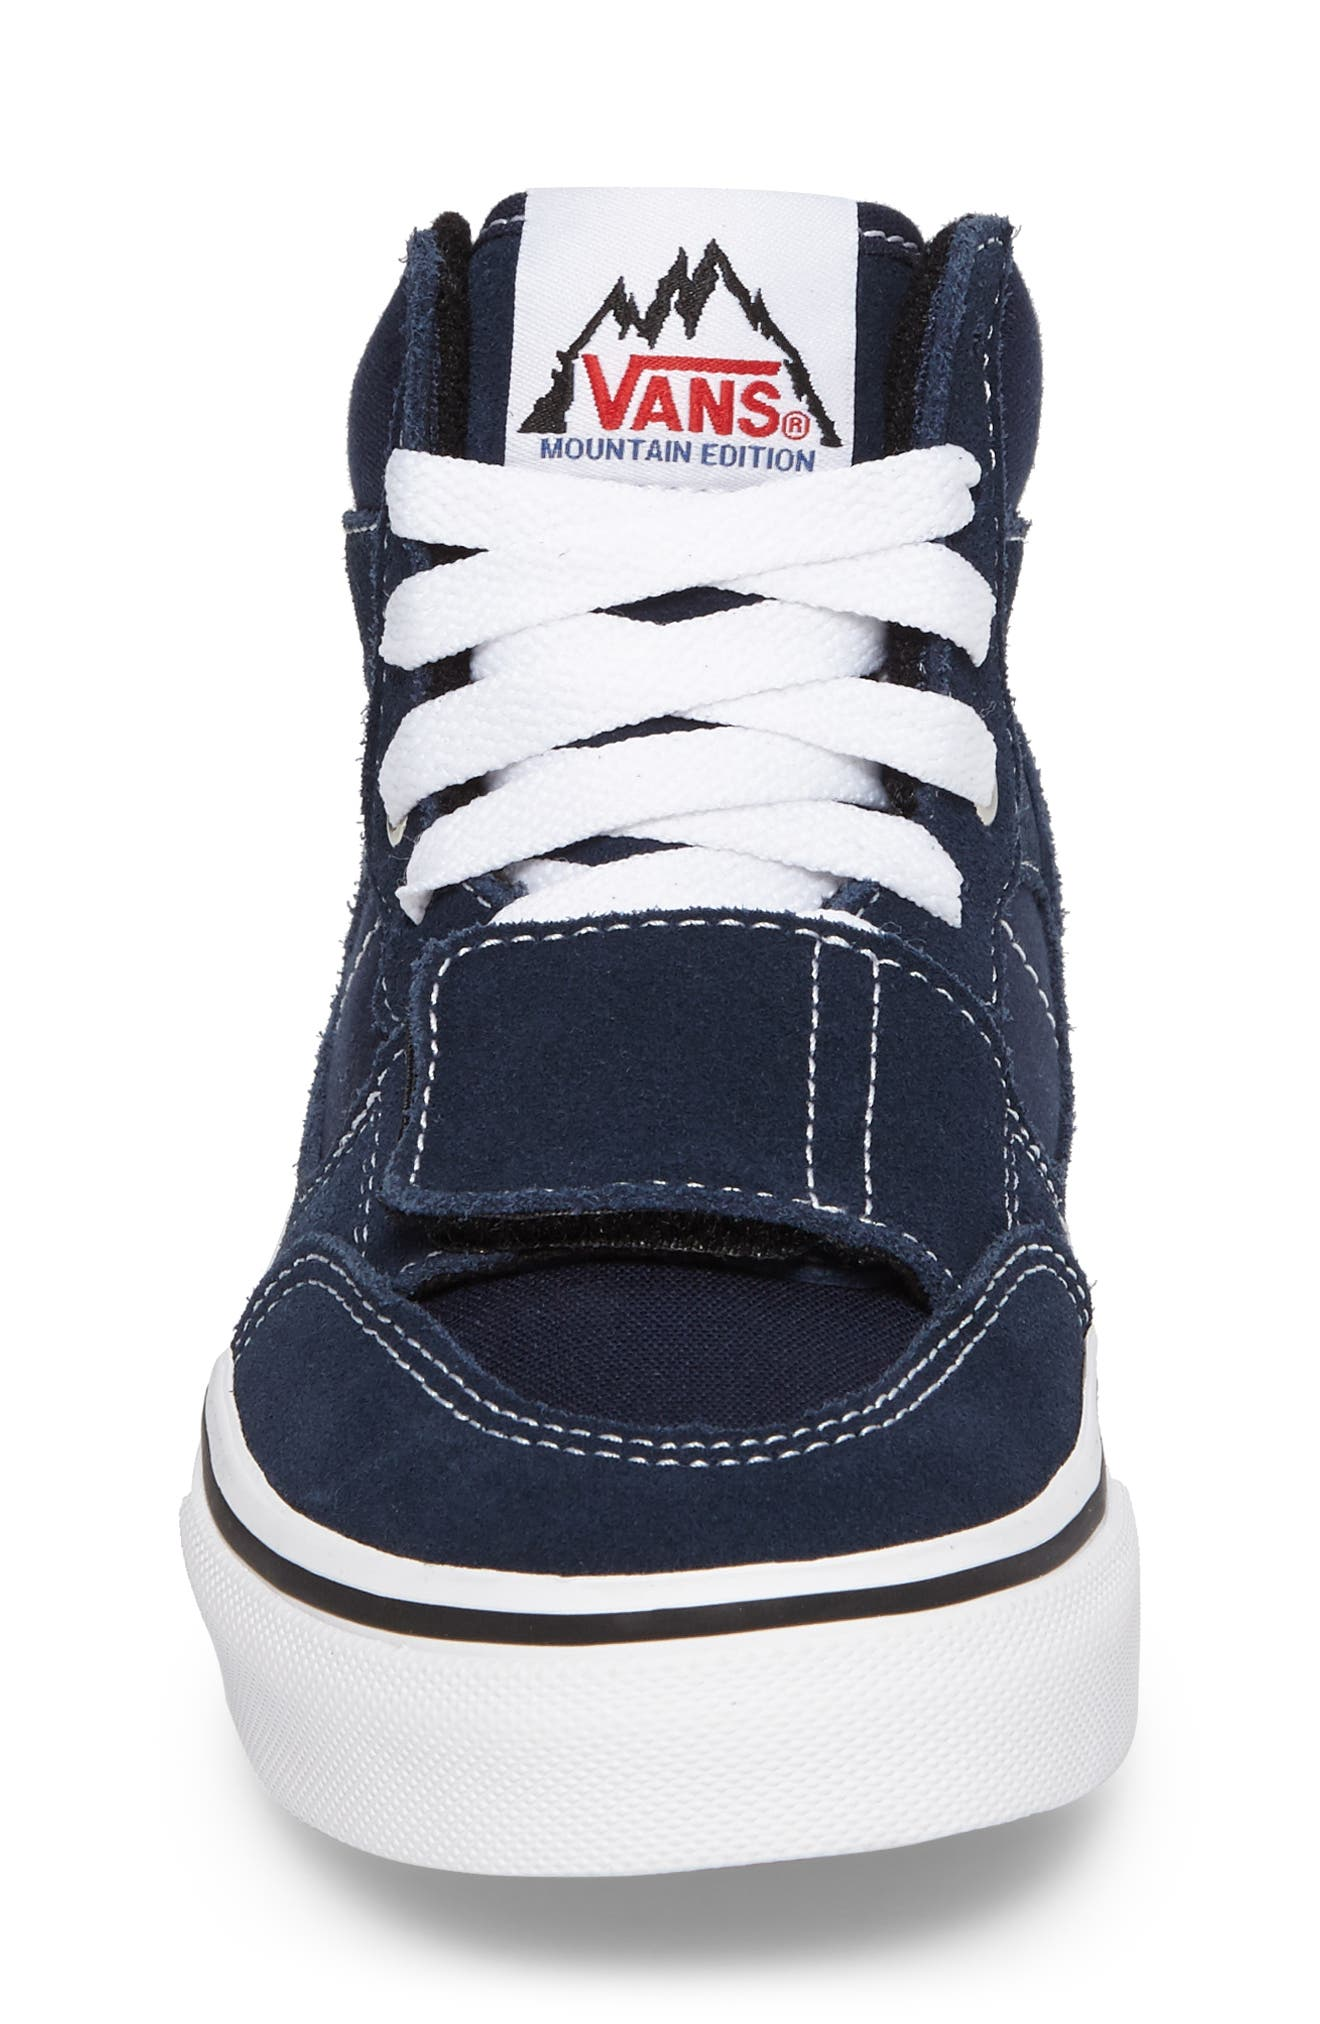 Mountain Edition Mid Top Sneaker,                             Alternate thumbnail 4, color,                             Dress Blue Canvas/ Suede